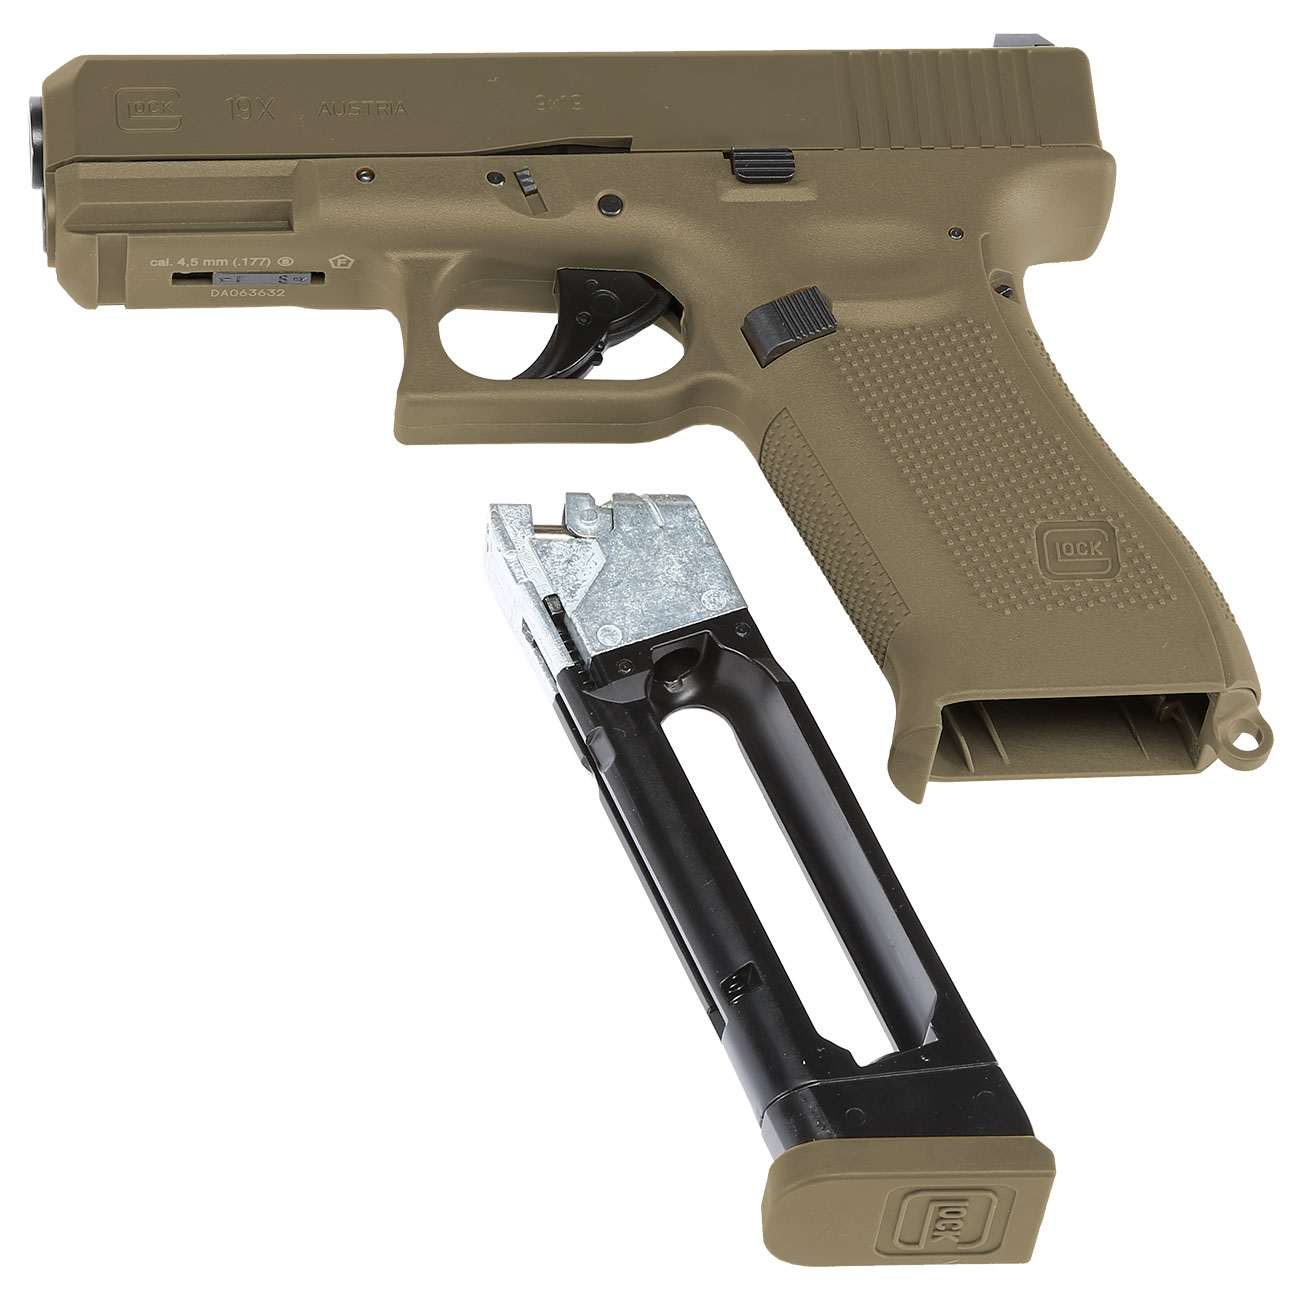 Glock 19X CO2-Luftpistole Kal. 4,5mm Stahl-BB coyote tan Blowback 7